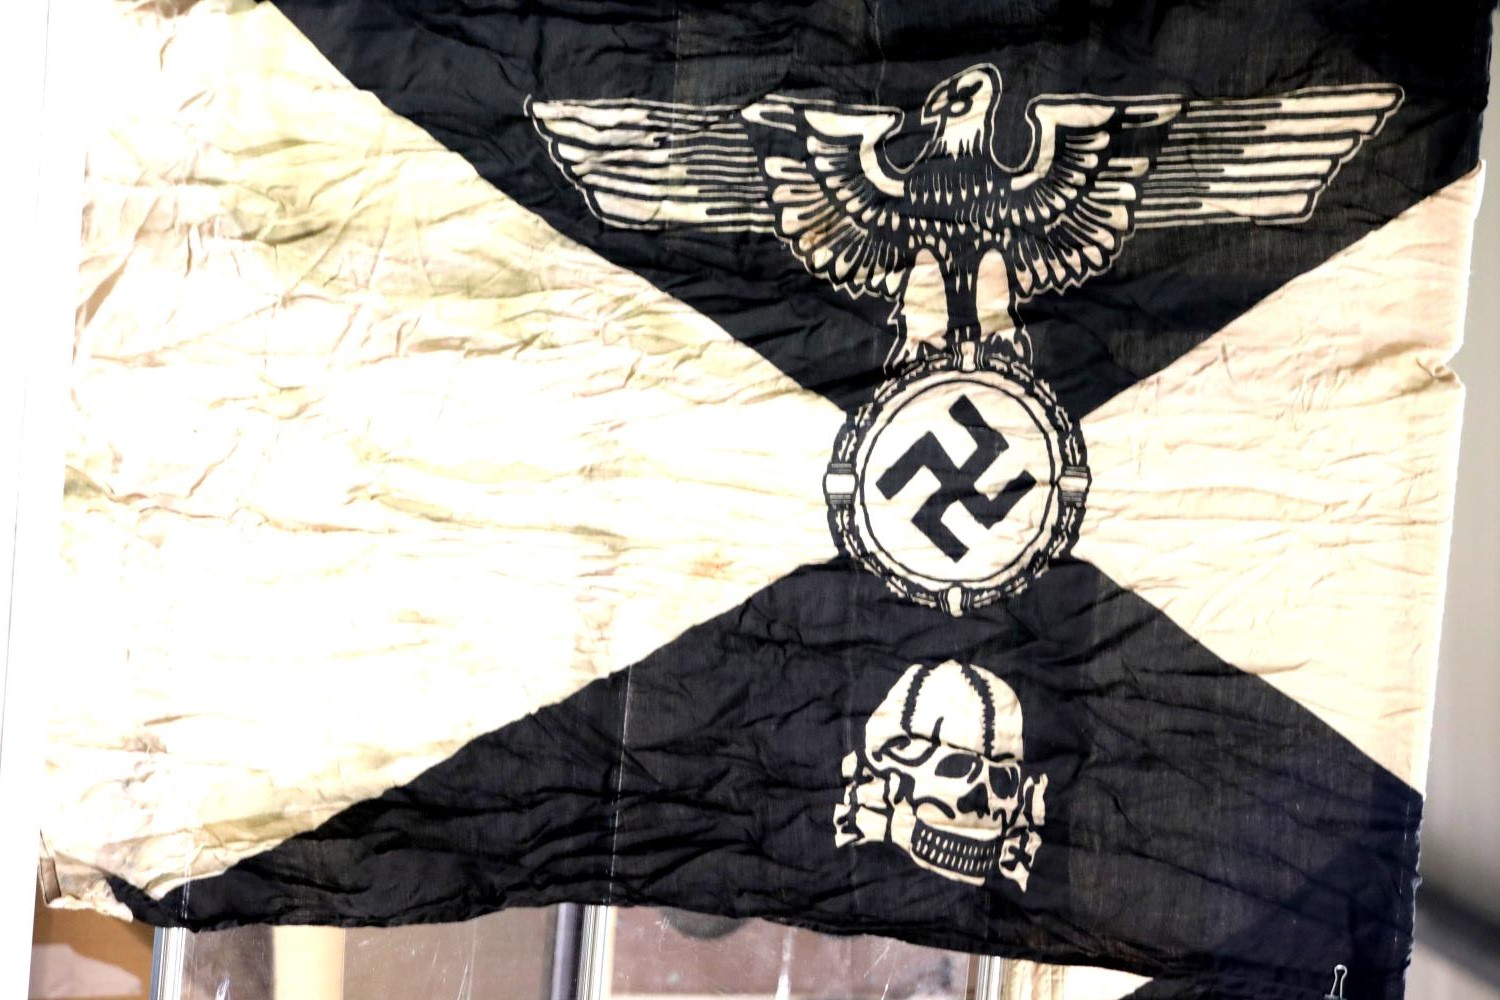 Lot 3004 - German SS type Panzer Division flag, 150 x 90 cm. P&P Group 1 (£14+VAT for the first lot and £1+